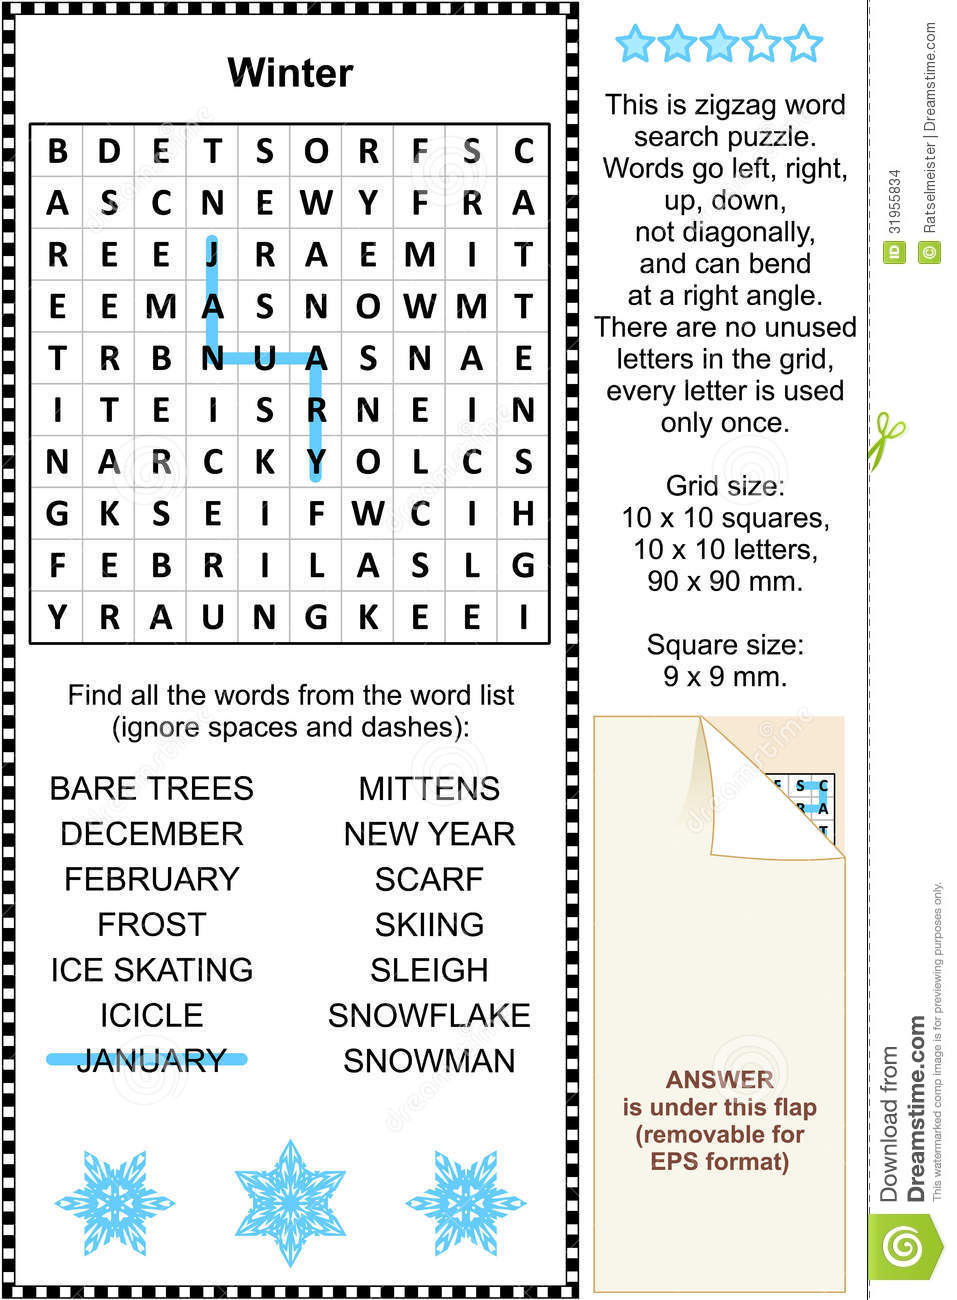 Winter Themed Wordsearch Puzzle Stock Vector - Image: 31955834